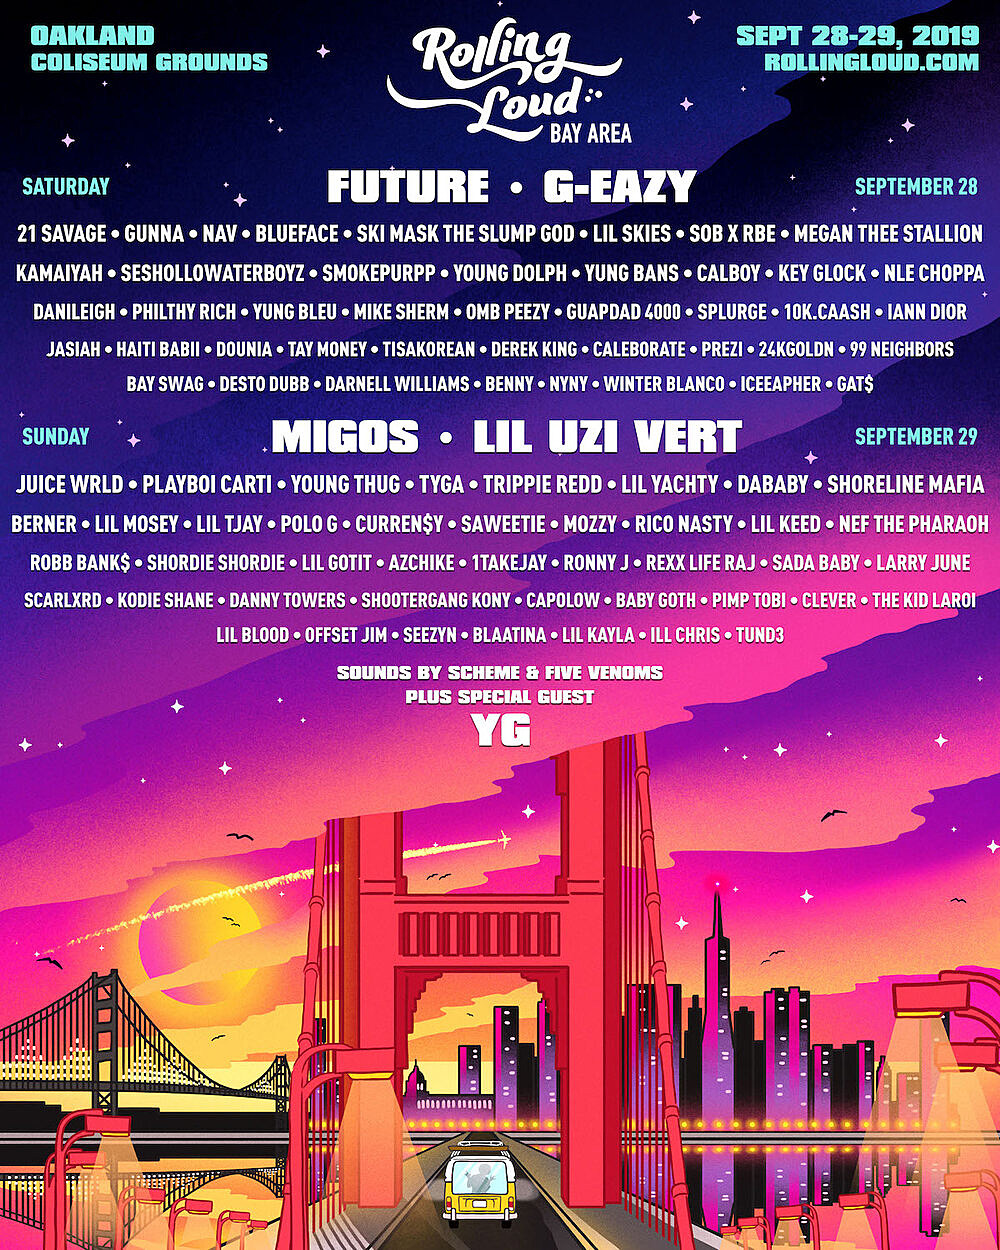 7 Am Lil Uzi Vert rolling loud bay area livestreaming this weekend